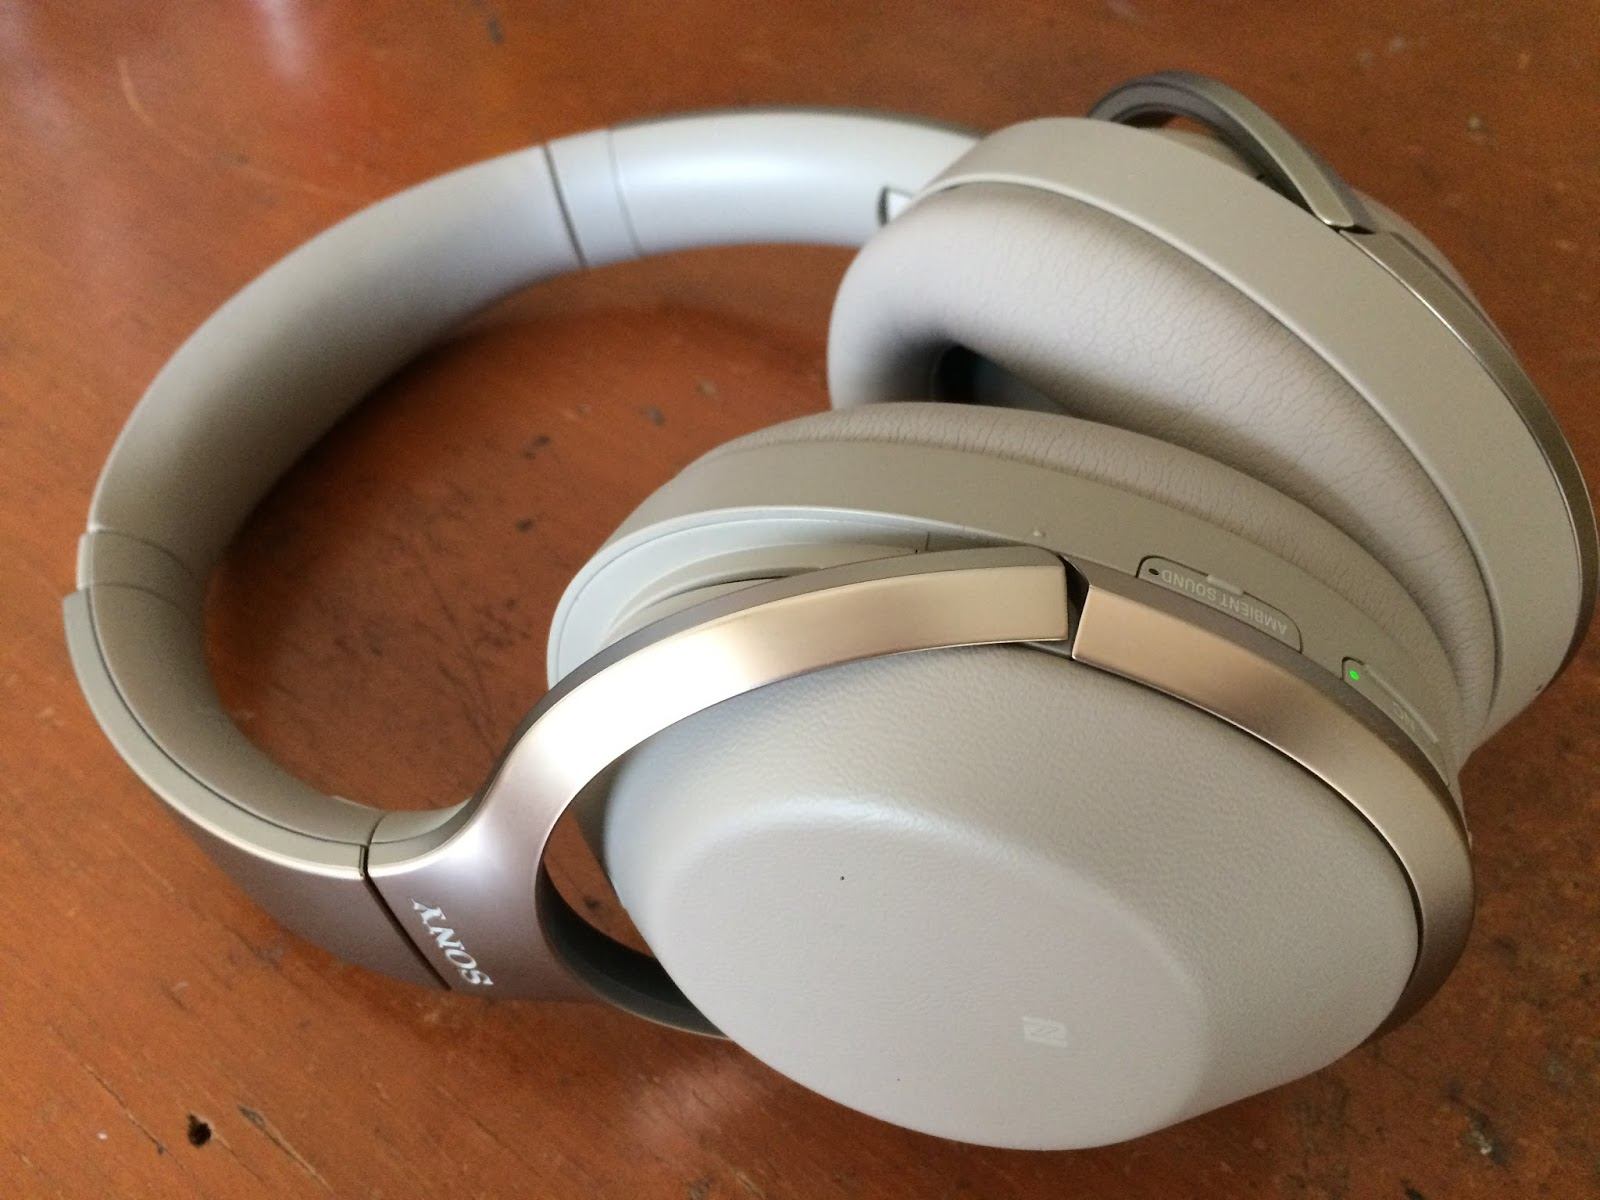 The Orronoco Audio Diy Sony Mdr 1000x Noise Canceling Headphone This Comes With Hard Pouch And Very Easy To Carry It During Traveling